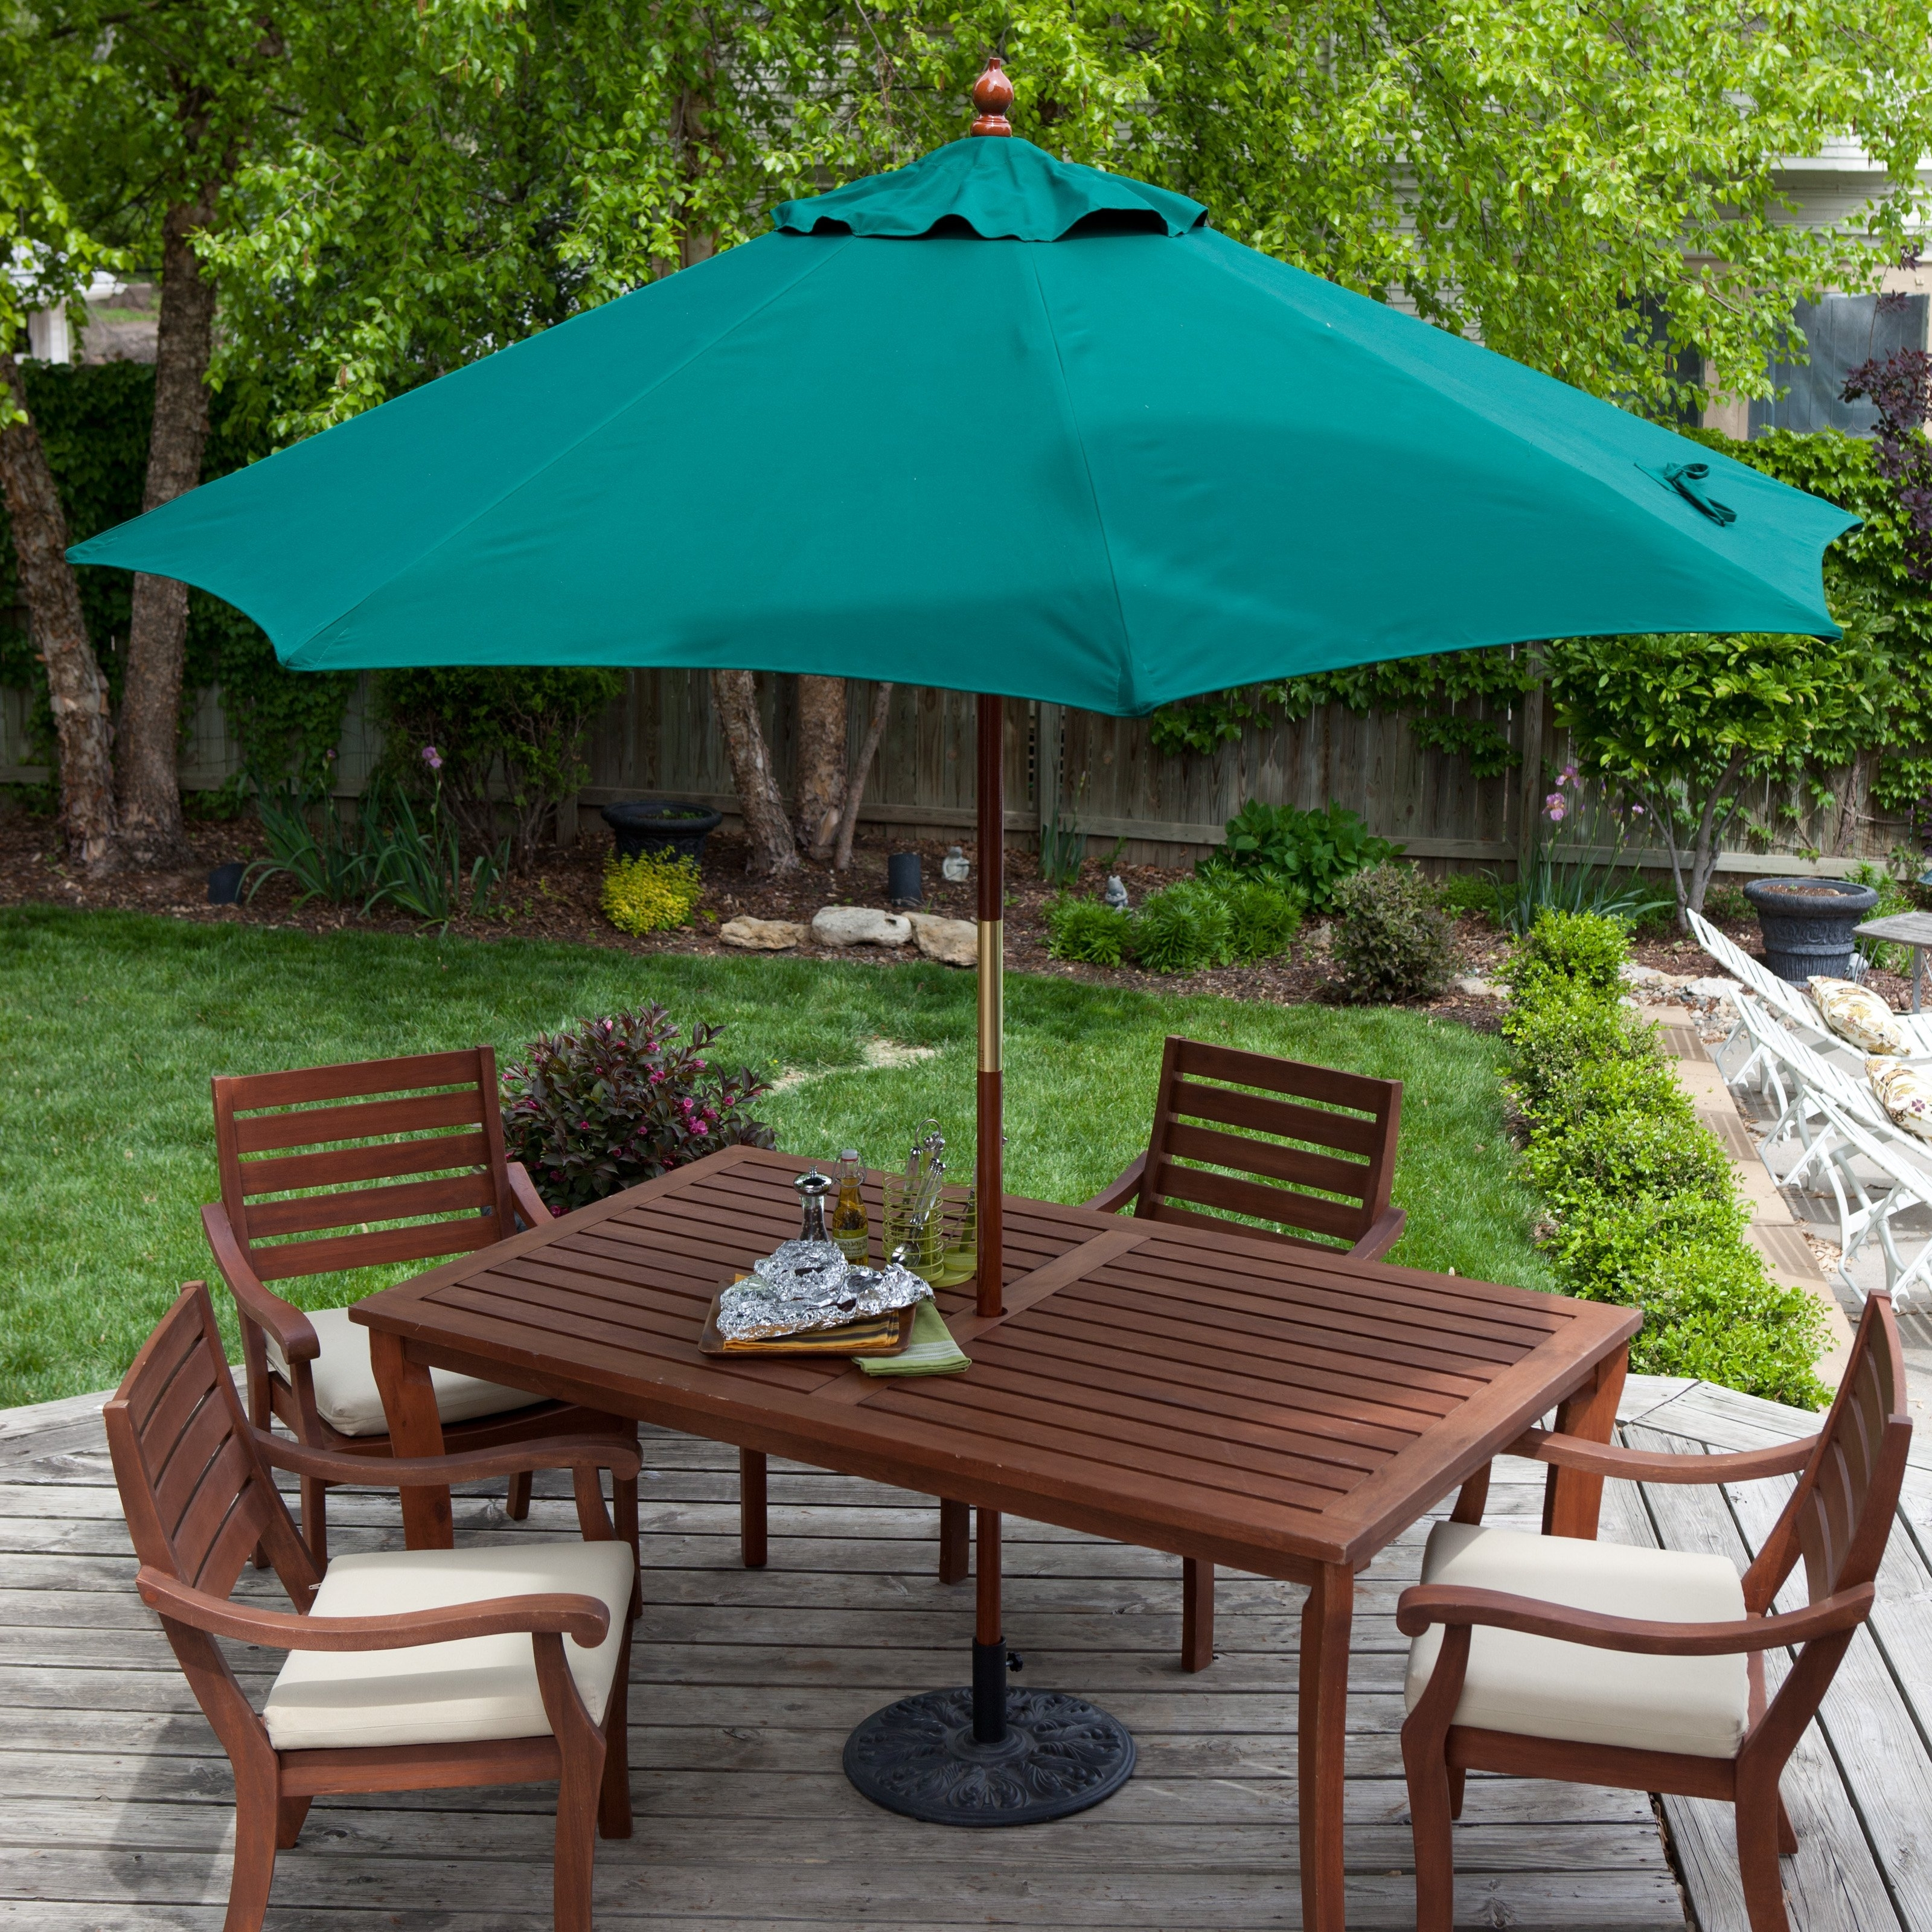 Widely Used Patio Dining Umbrellas Within Patio Table And Umbrella Images – Table Decoration Ideas (View 20 of 20)